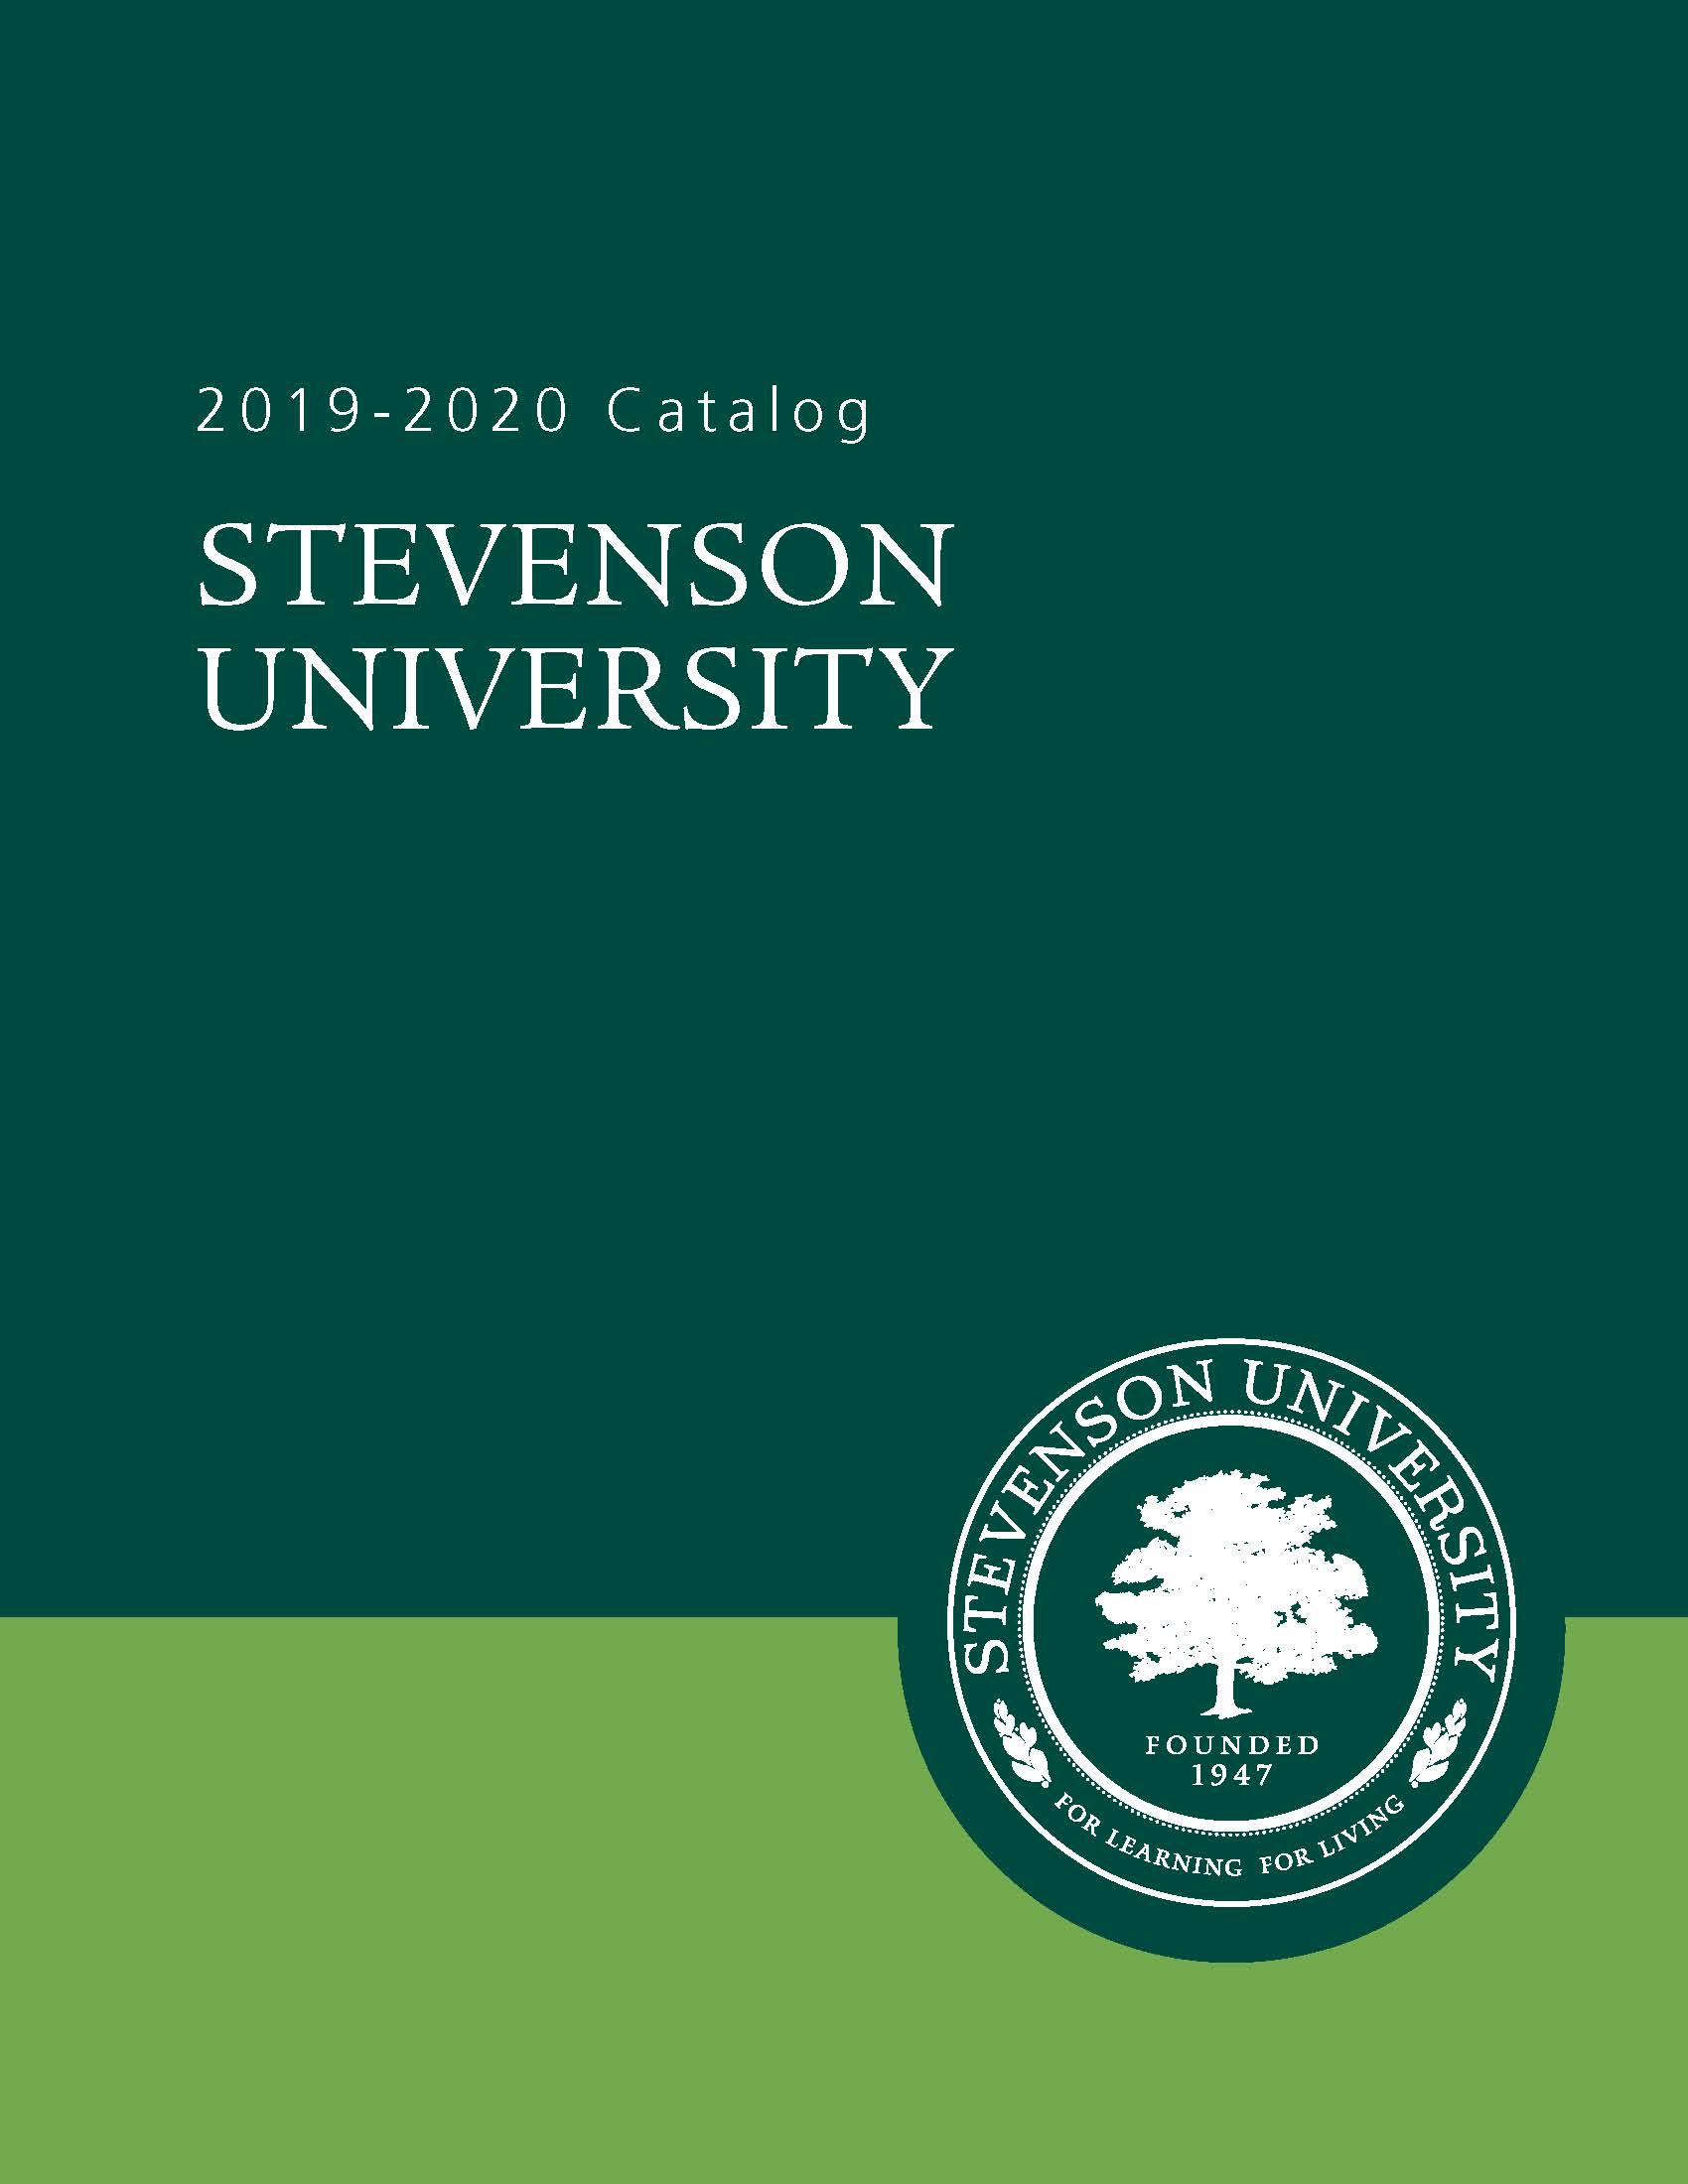 This is a picture of the 2019 - 2020 catalog cover.